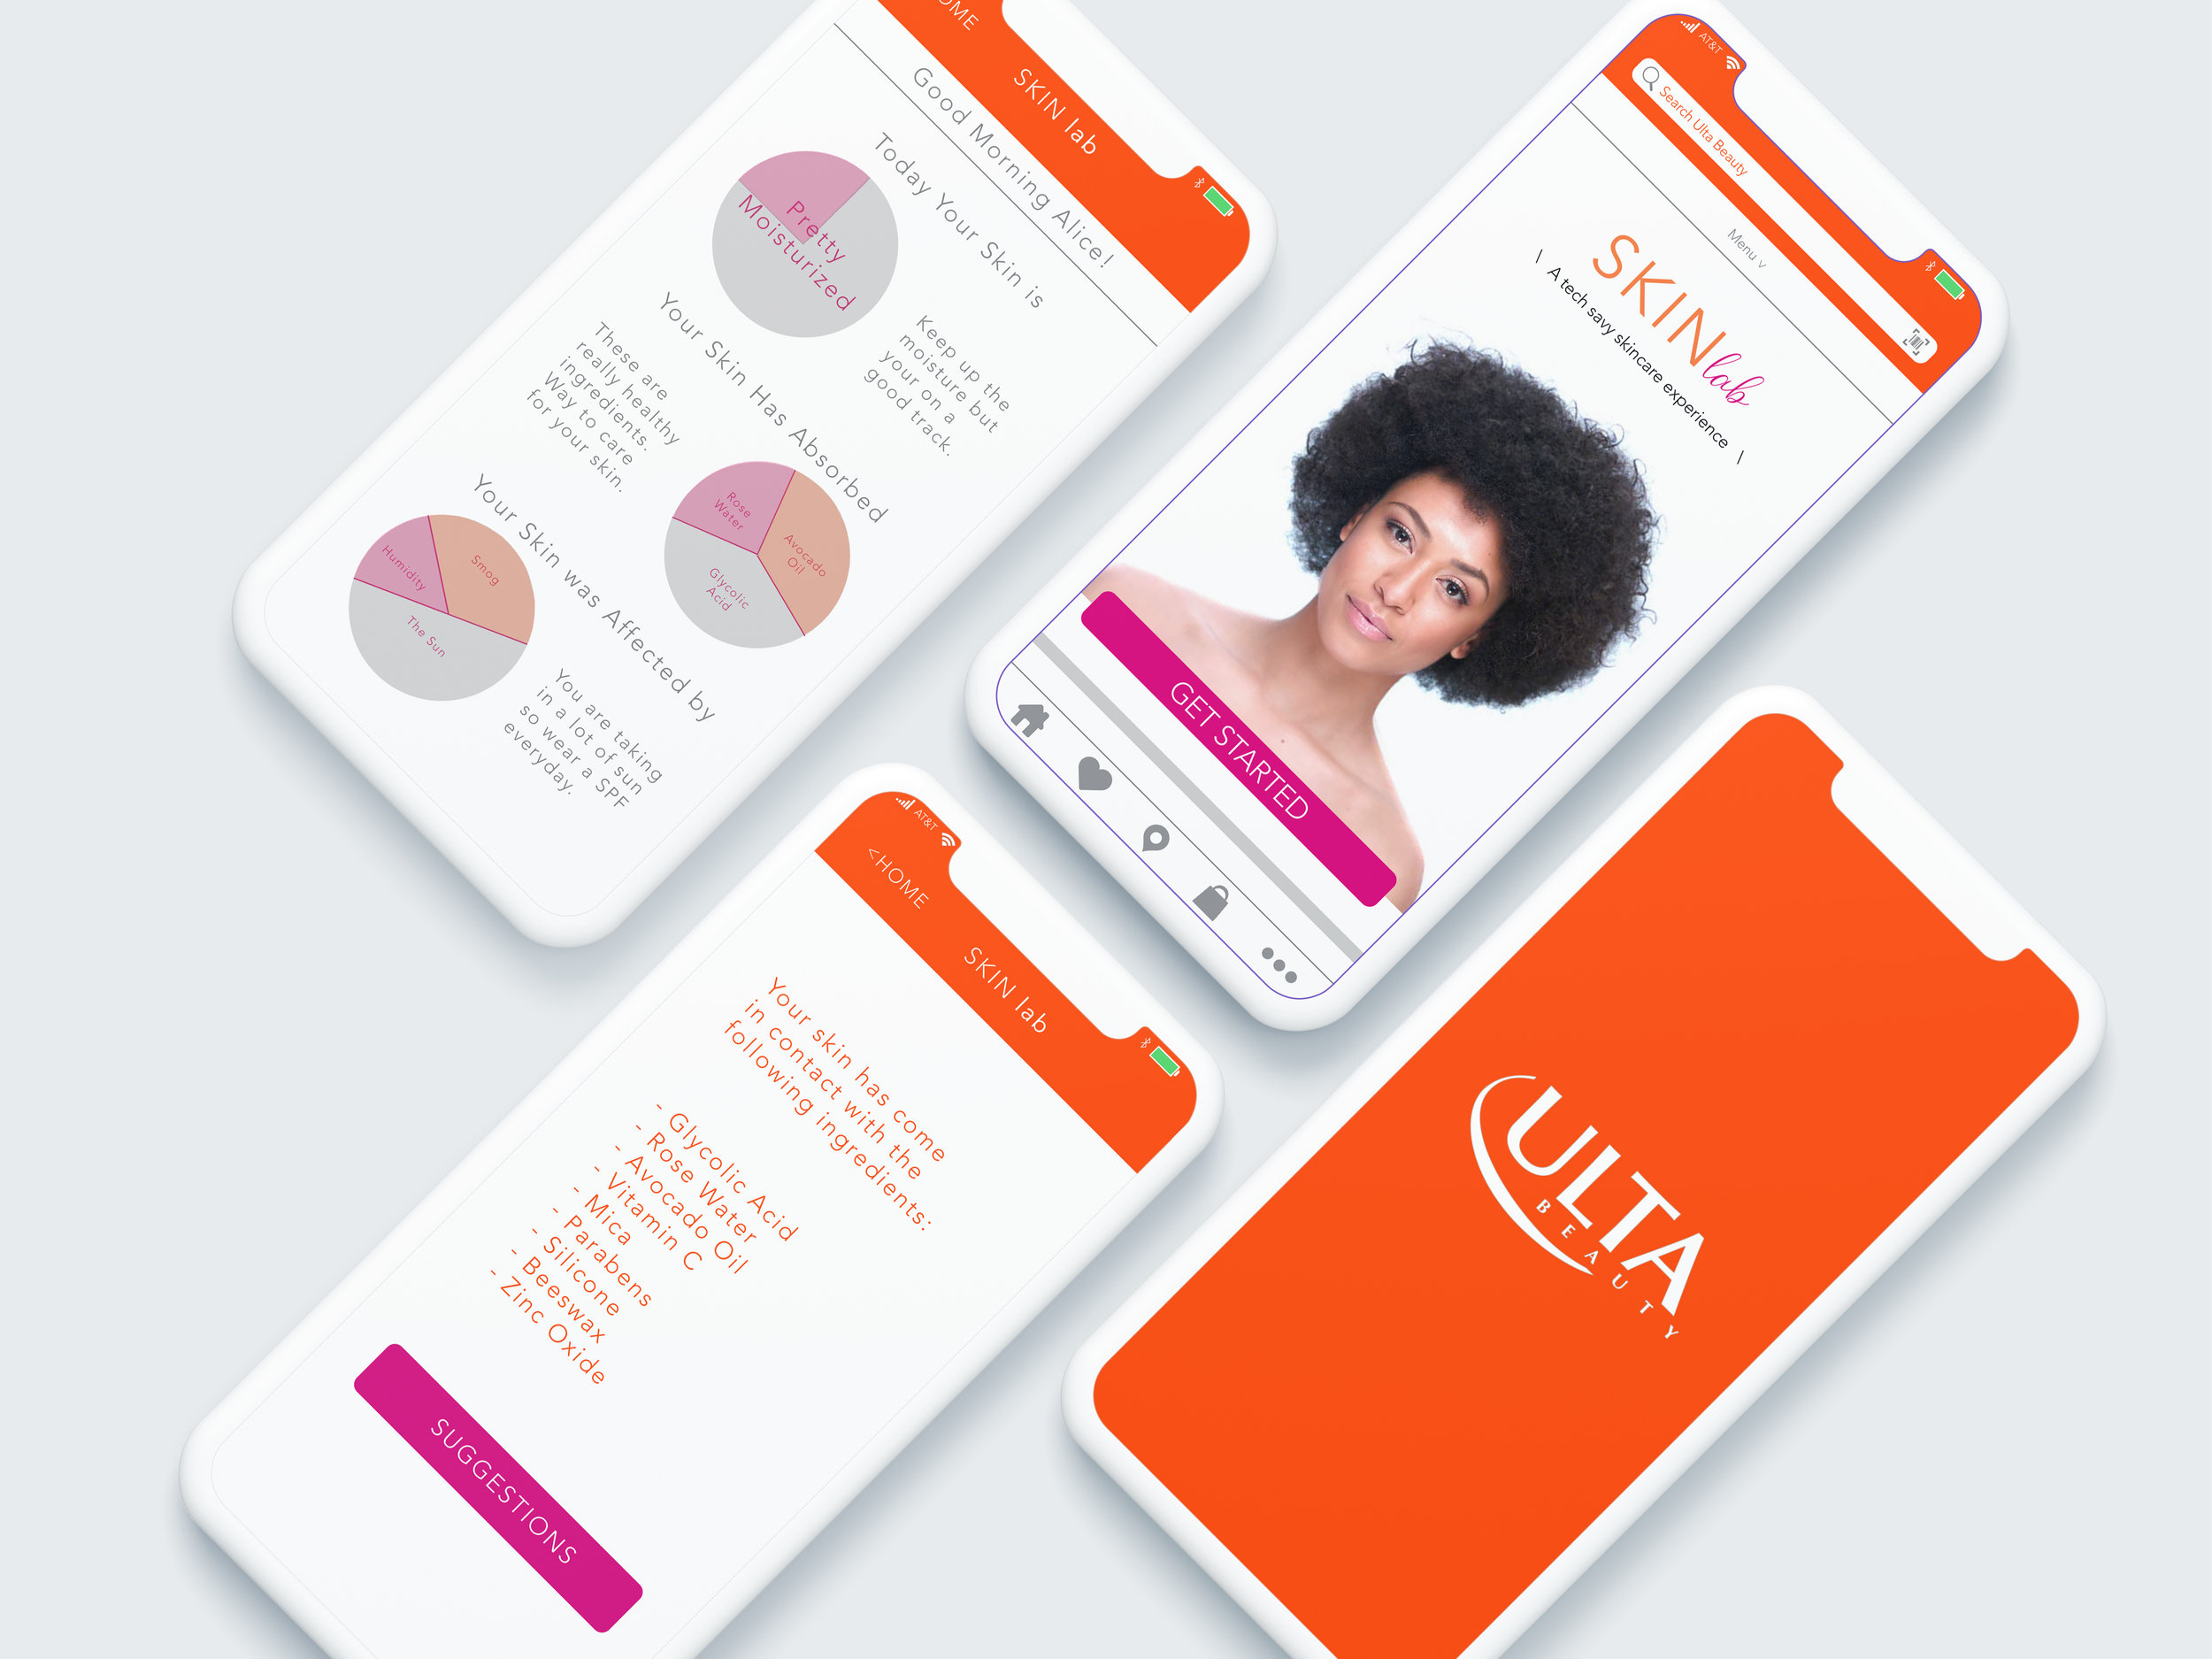 ULTA Beauty  a new product & app to revitalise this luxury drugstore brand. we got ya'll your own mini dermatologist at home. ur welcome